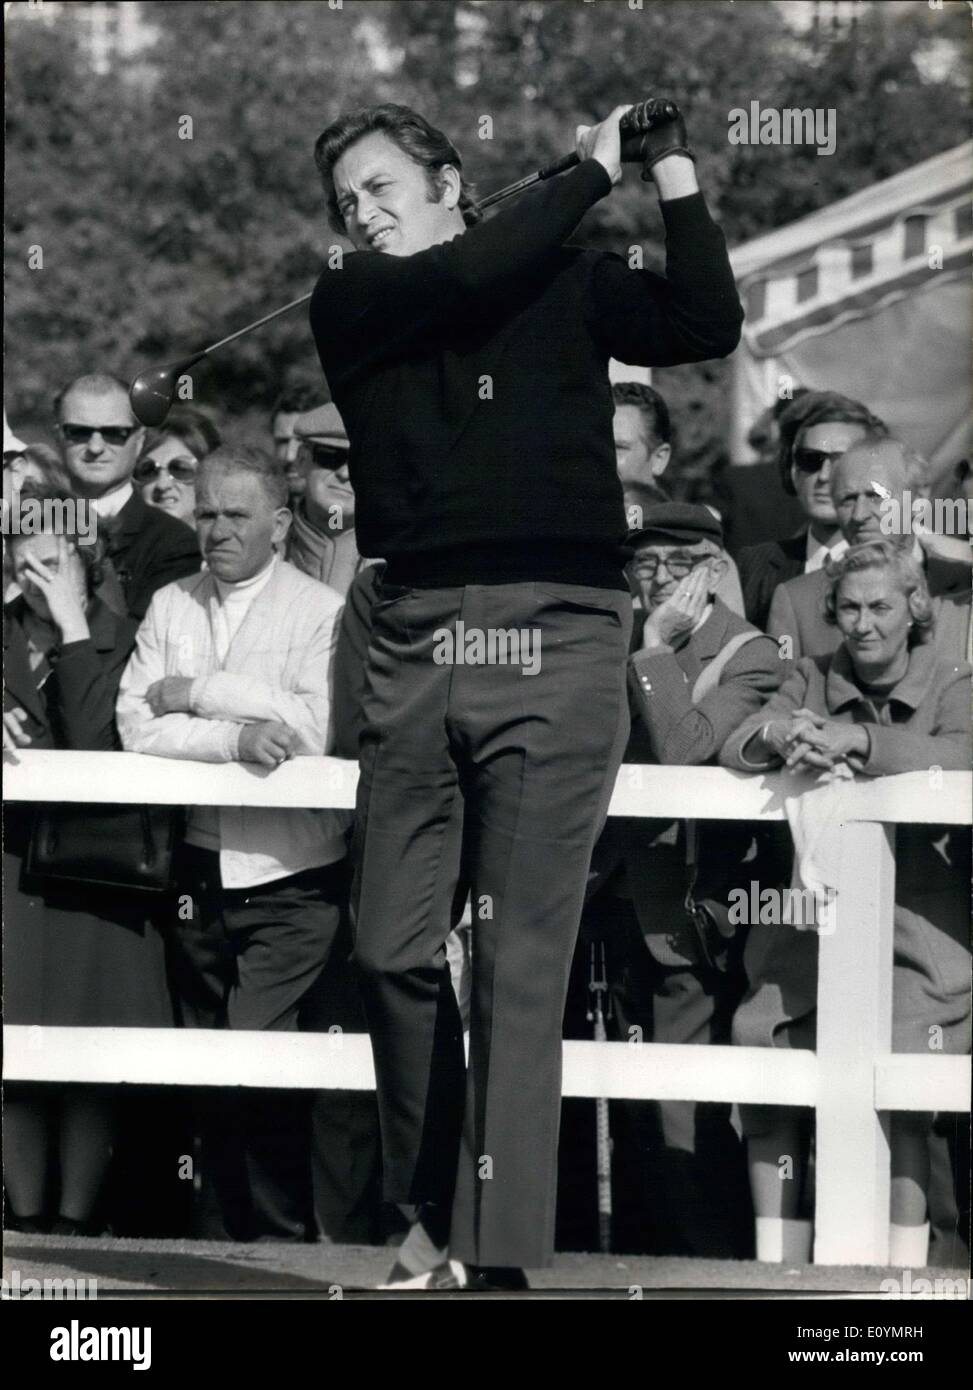 Oct. 17, 1970 - Raymond Floyd Playing in the Tournament of Champions - Stock Image